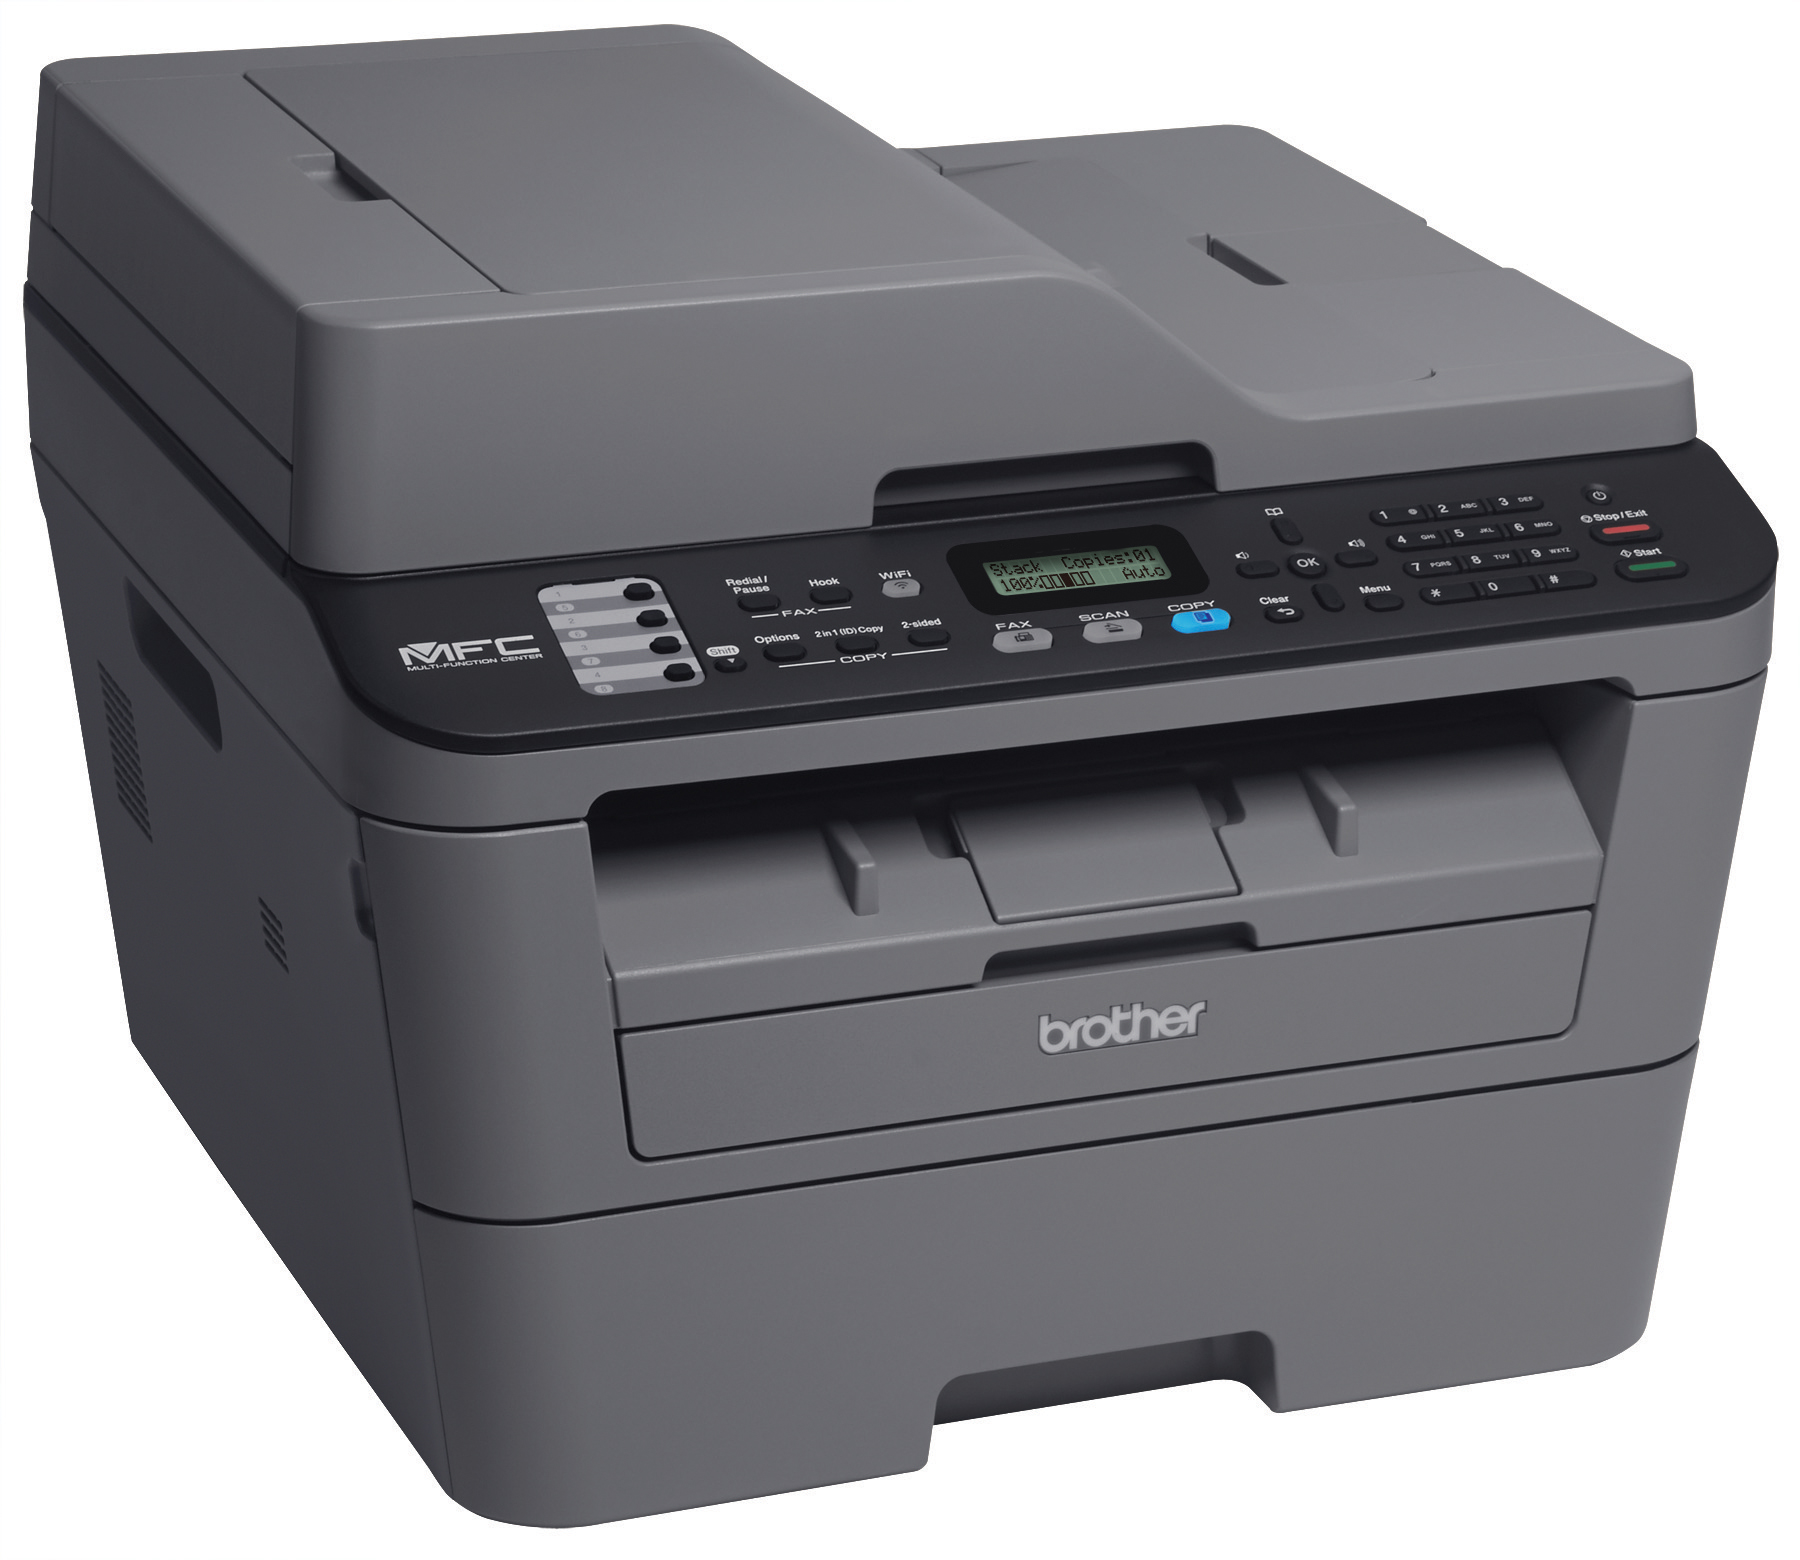 Refurbished MFCL2680W All in One Laser Printer- Copier - Scanner - Fax